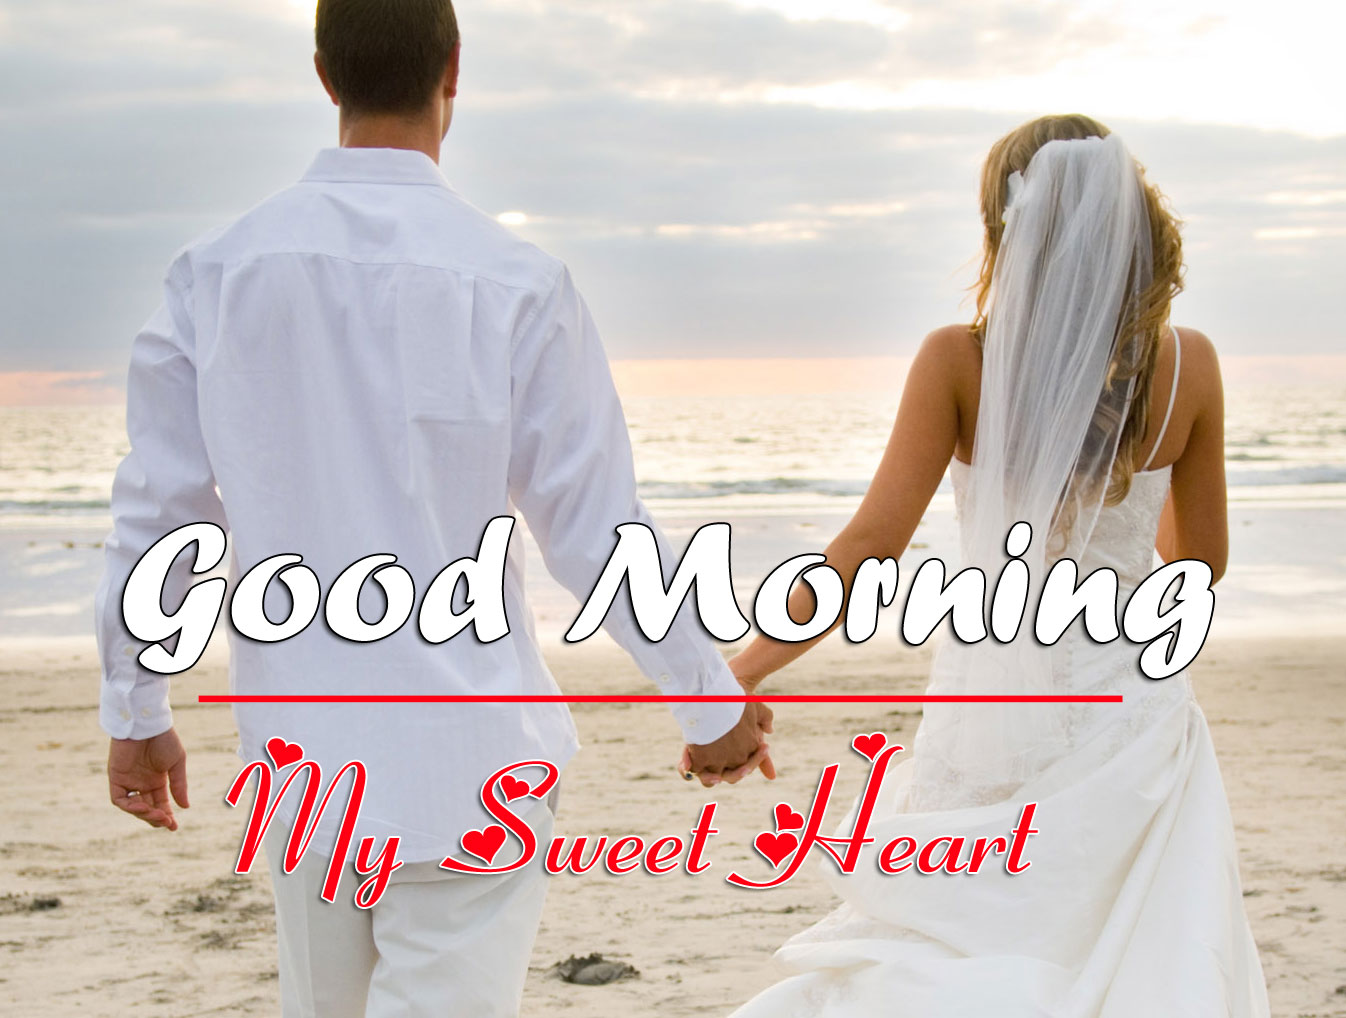 Good Morning Wishes Pics Free 3